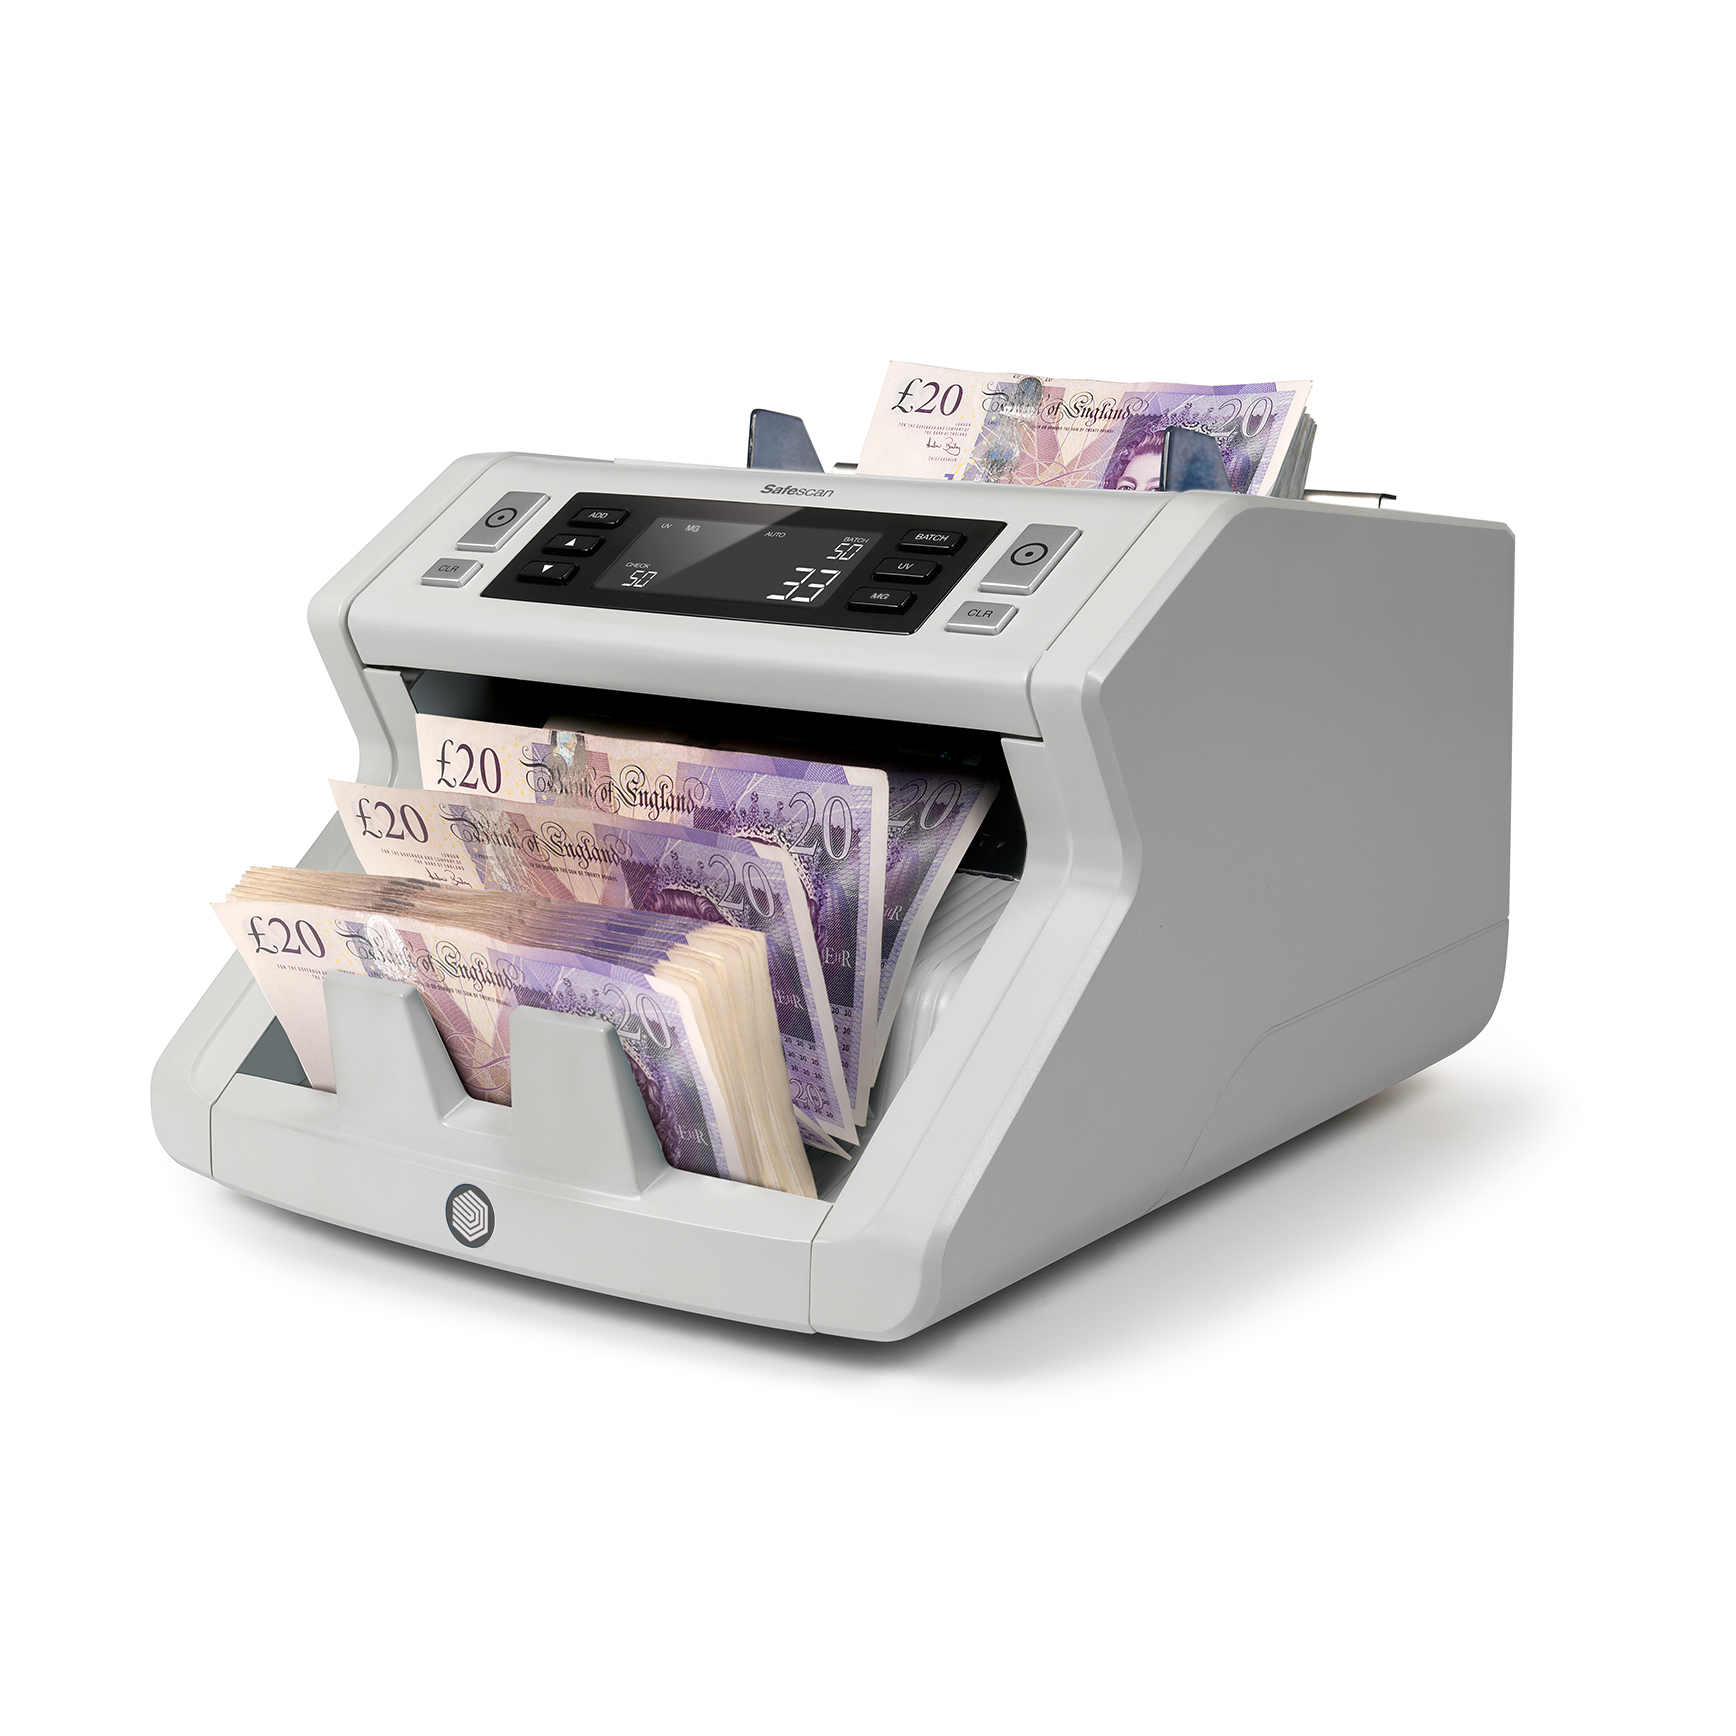 Cash Safescan 2250 Banknote Counter & Checker 5.8kg L250xW295xH184mm Grey Ref 115-0561